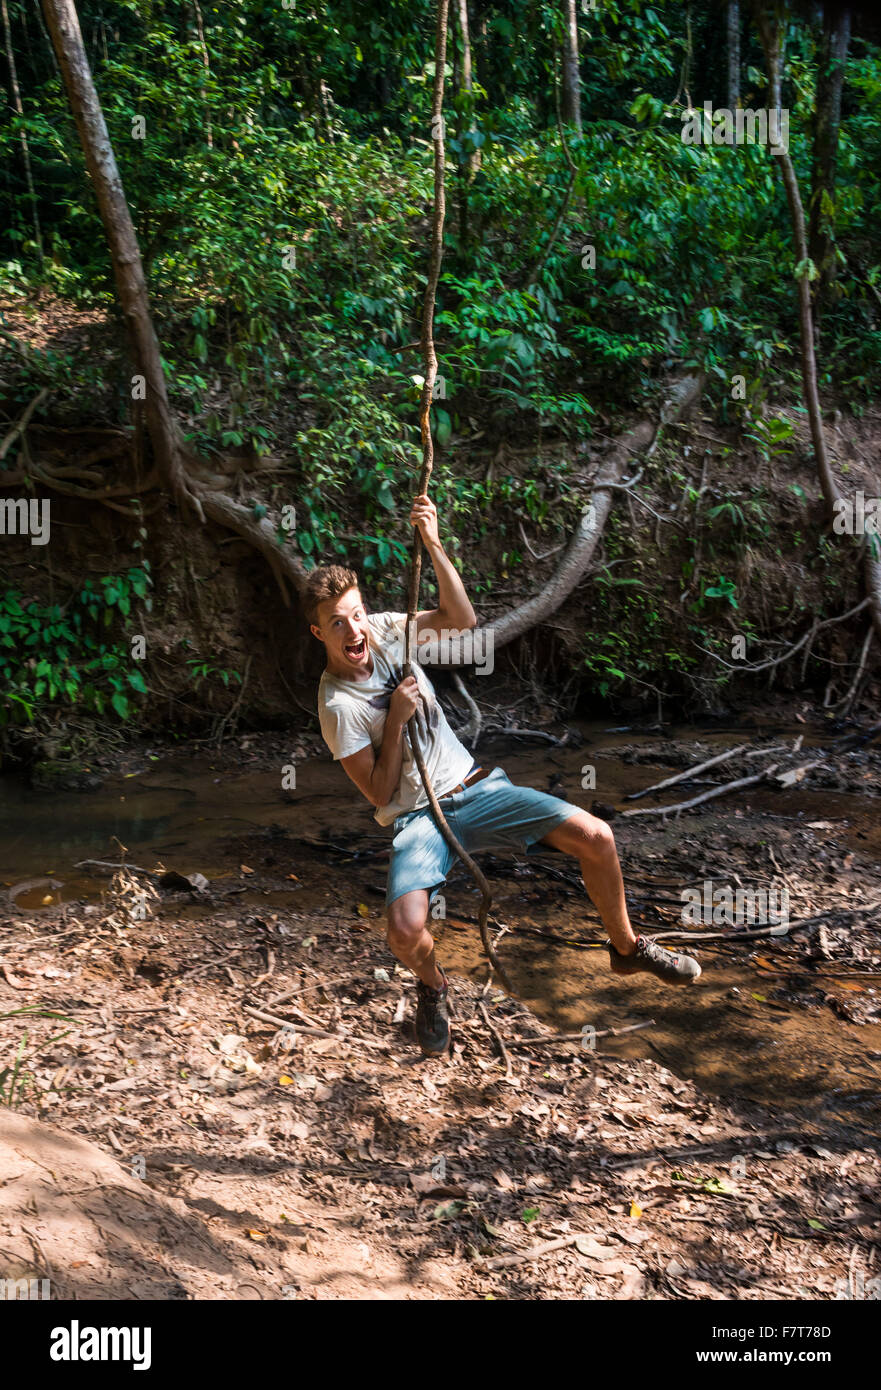 Young man, tourist swinging on a vine in the jungle, tropical rain forest, Taman Negara, Malaysia - Stock Image